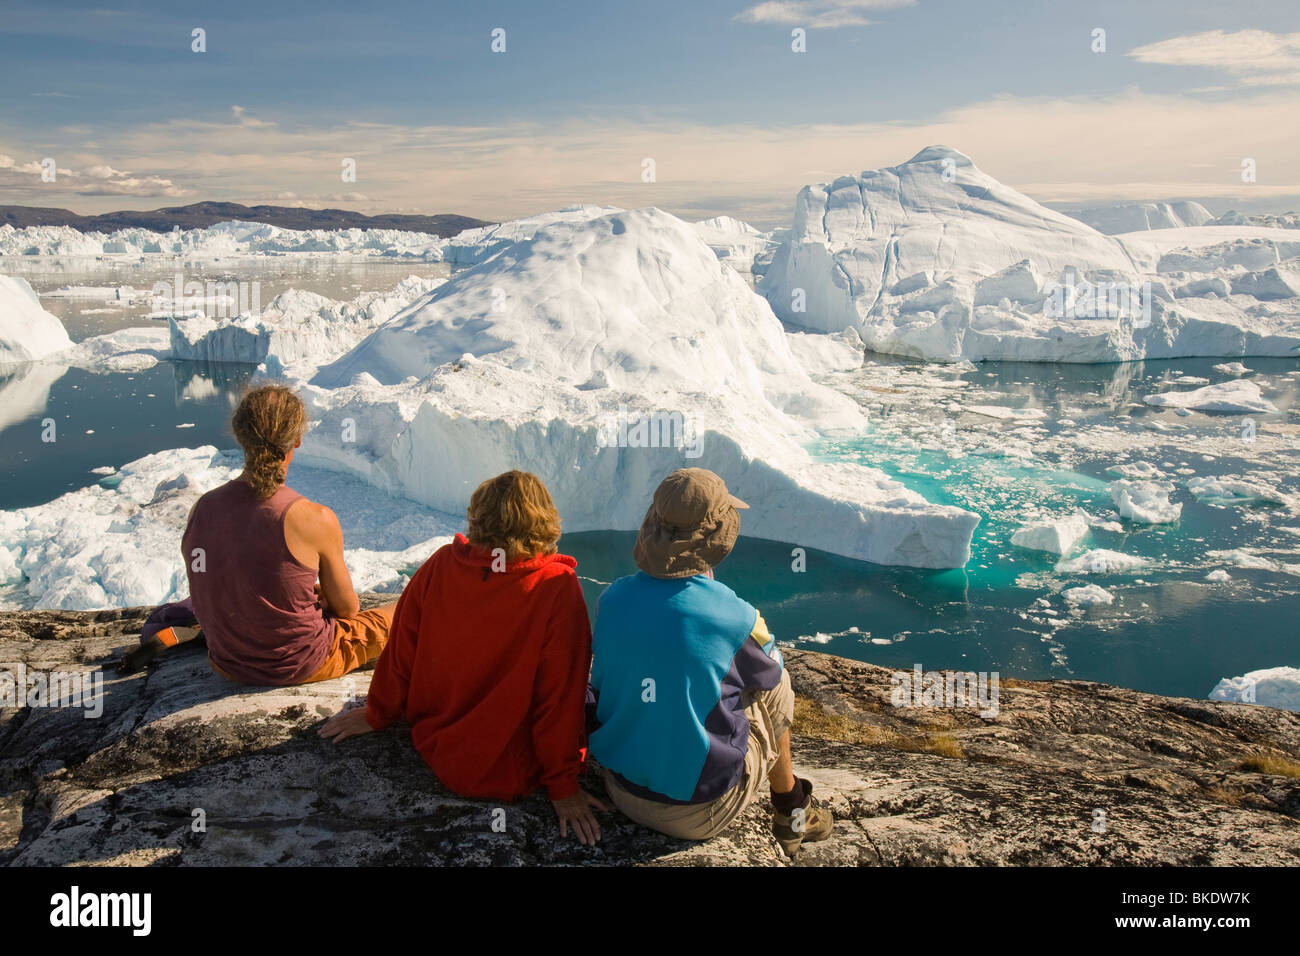 Icebergs from the Jacobshavn glacier or Sermeq Kujalleq drains 7% of the Greenland ice sheet - Stock Image